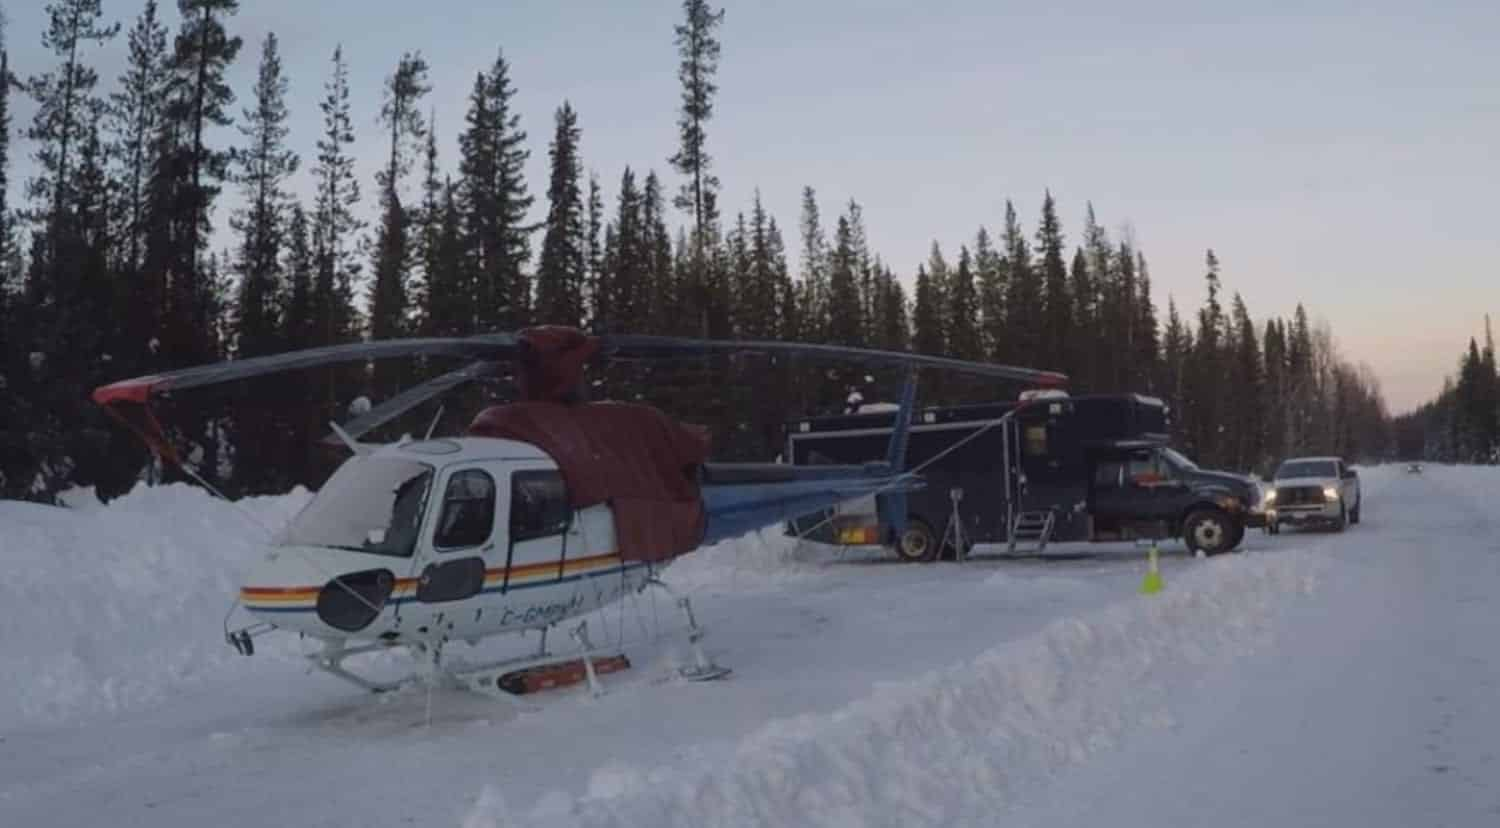 RCMP drone flew at wrong altitude when it collided with helicopter